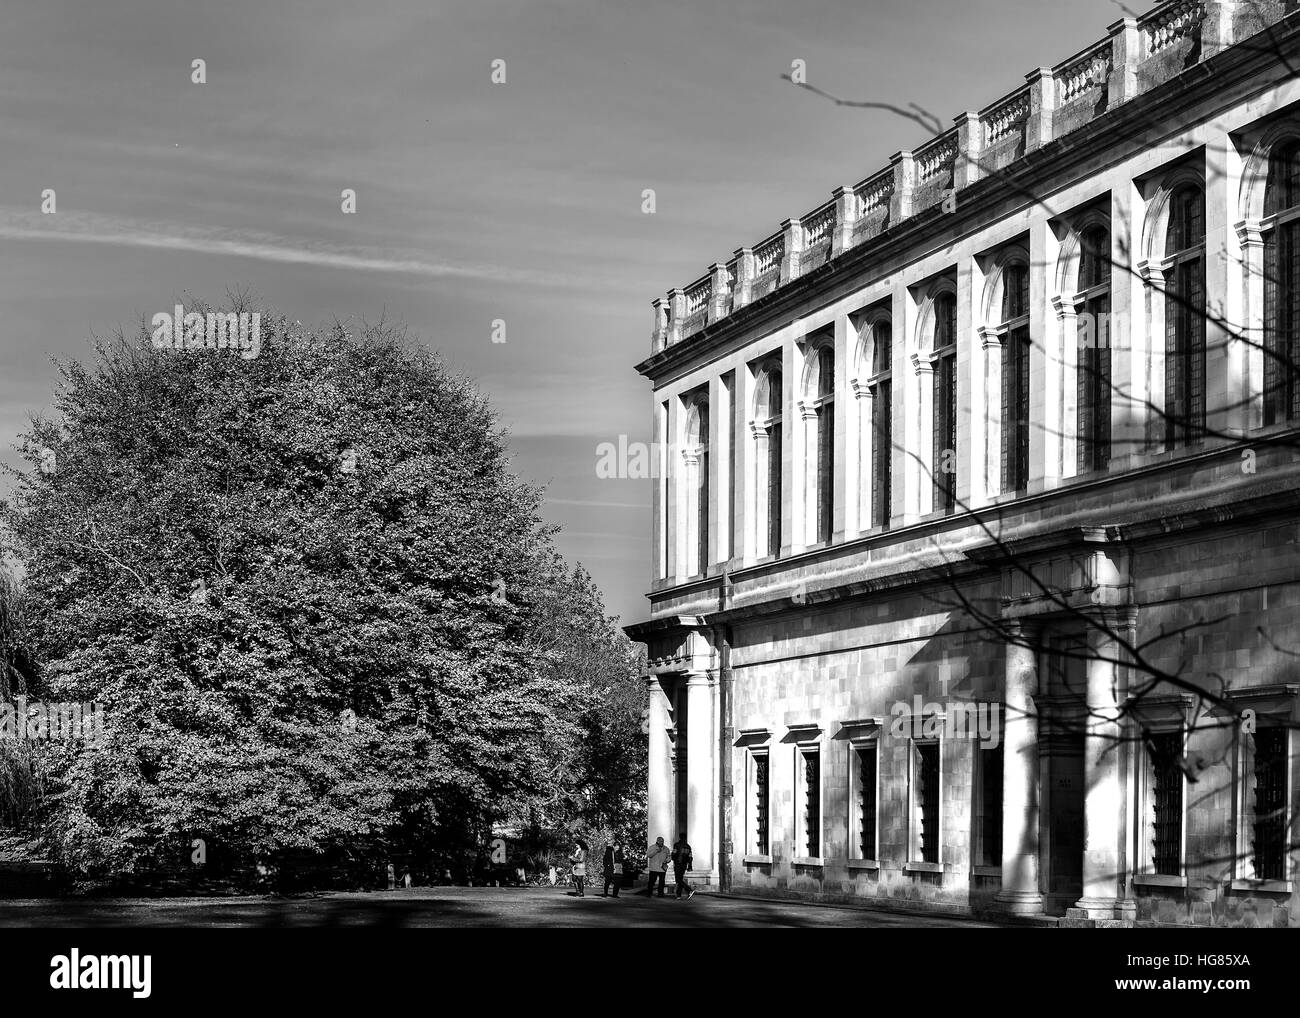 Wren library at Trinity college, university of Cambridge, England. - Stock Image